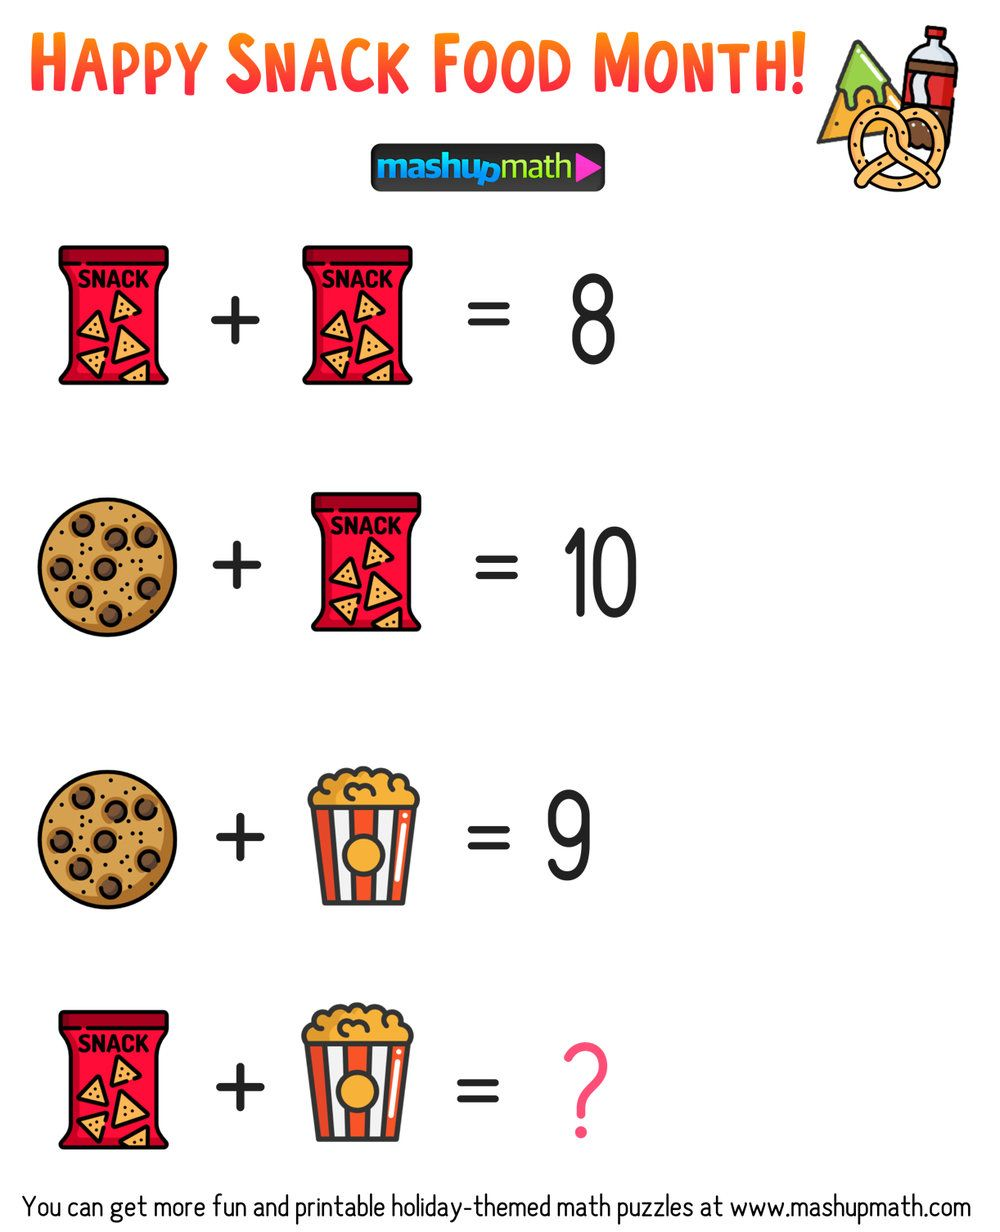 Free Math Brain Teaser Puzzles for Kids in Grades 1-6 to Celebrate Snack  Food Month! — Mashup Math   Maths puzzles [ 1232 x 1000 Pixel ]